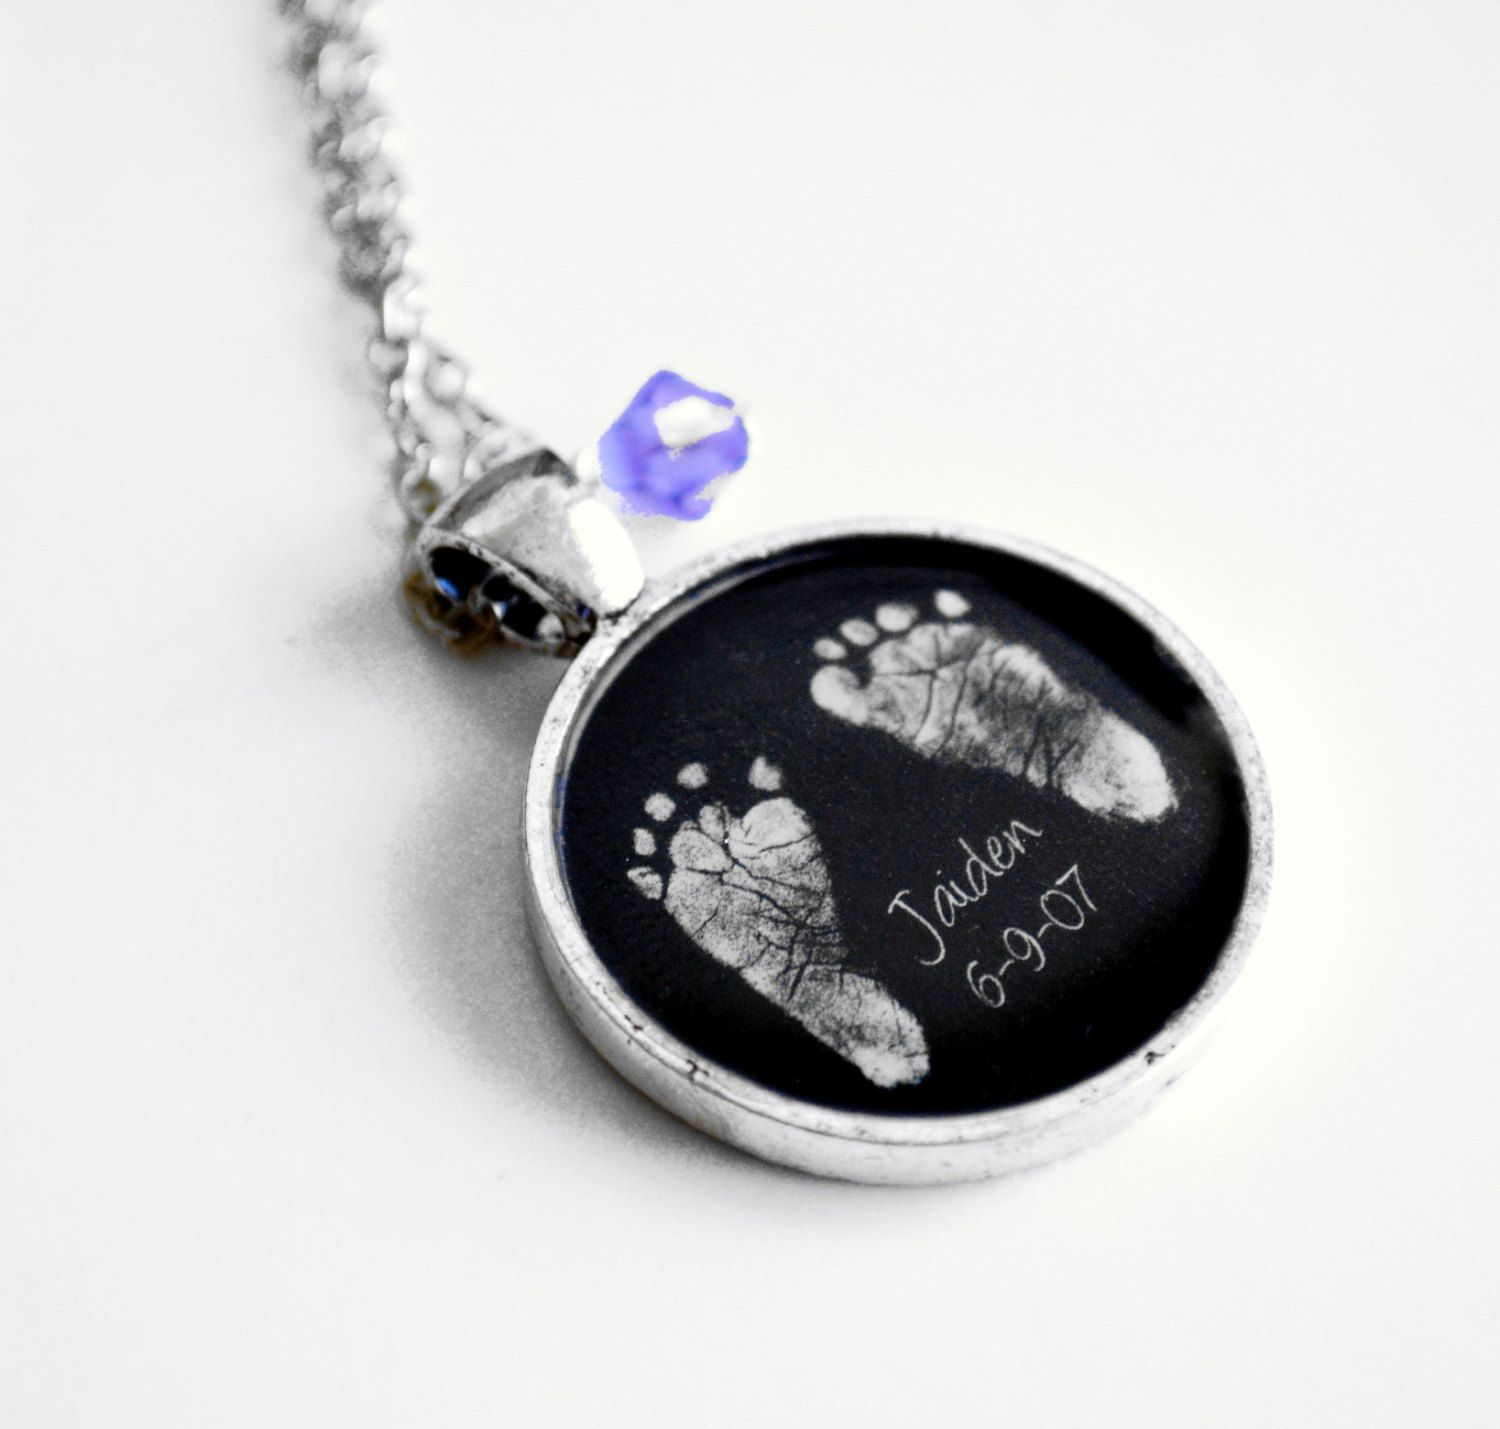 tm silver pet keepsake prints print product two heart puffed paws necklace paw cremation pendant sterling